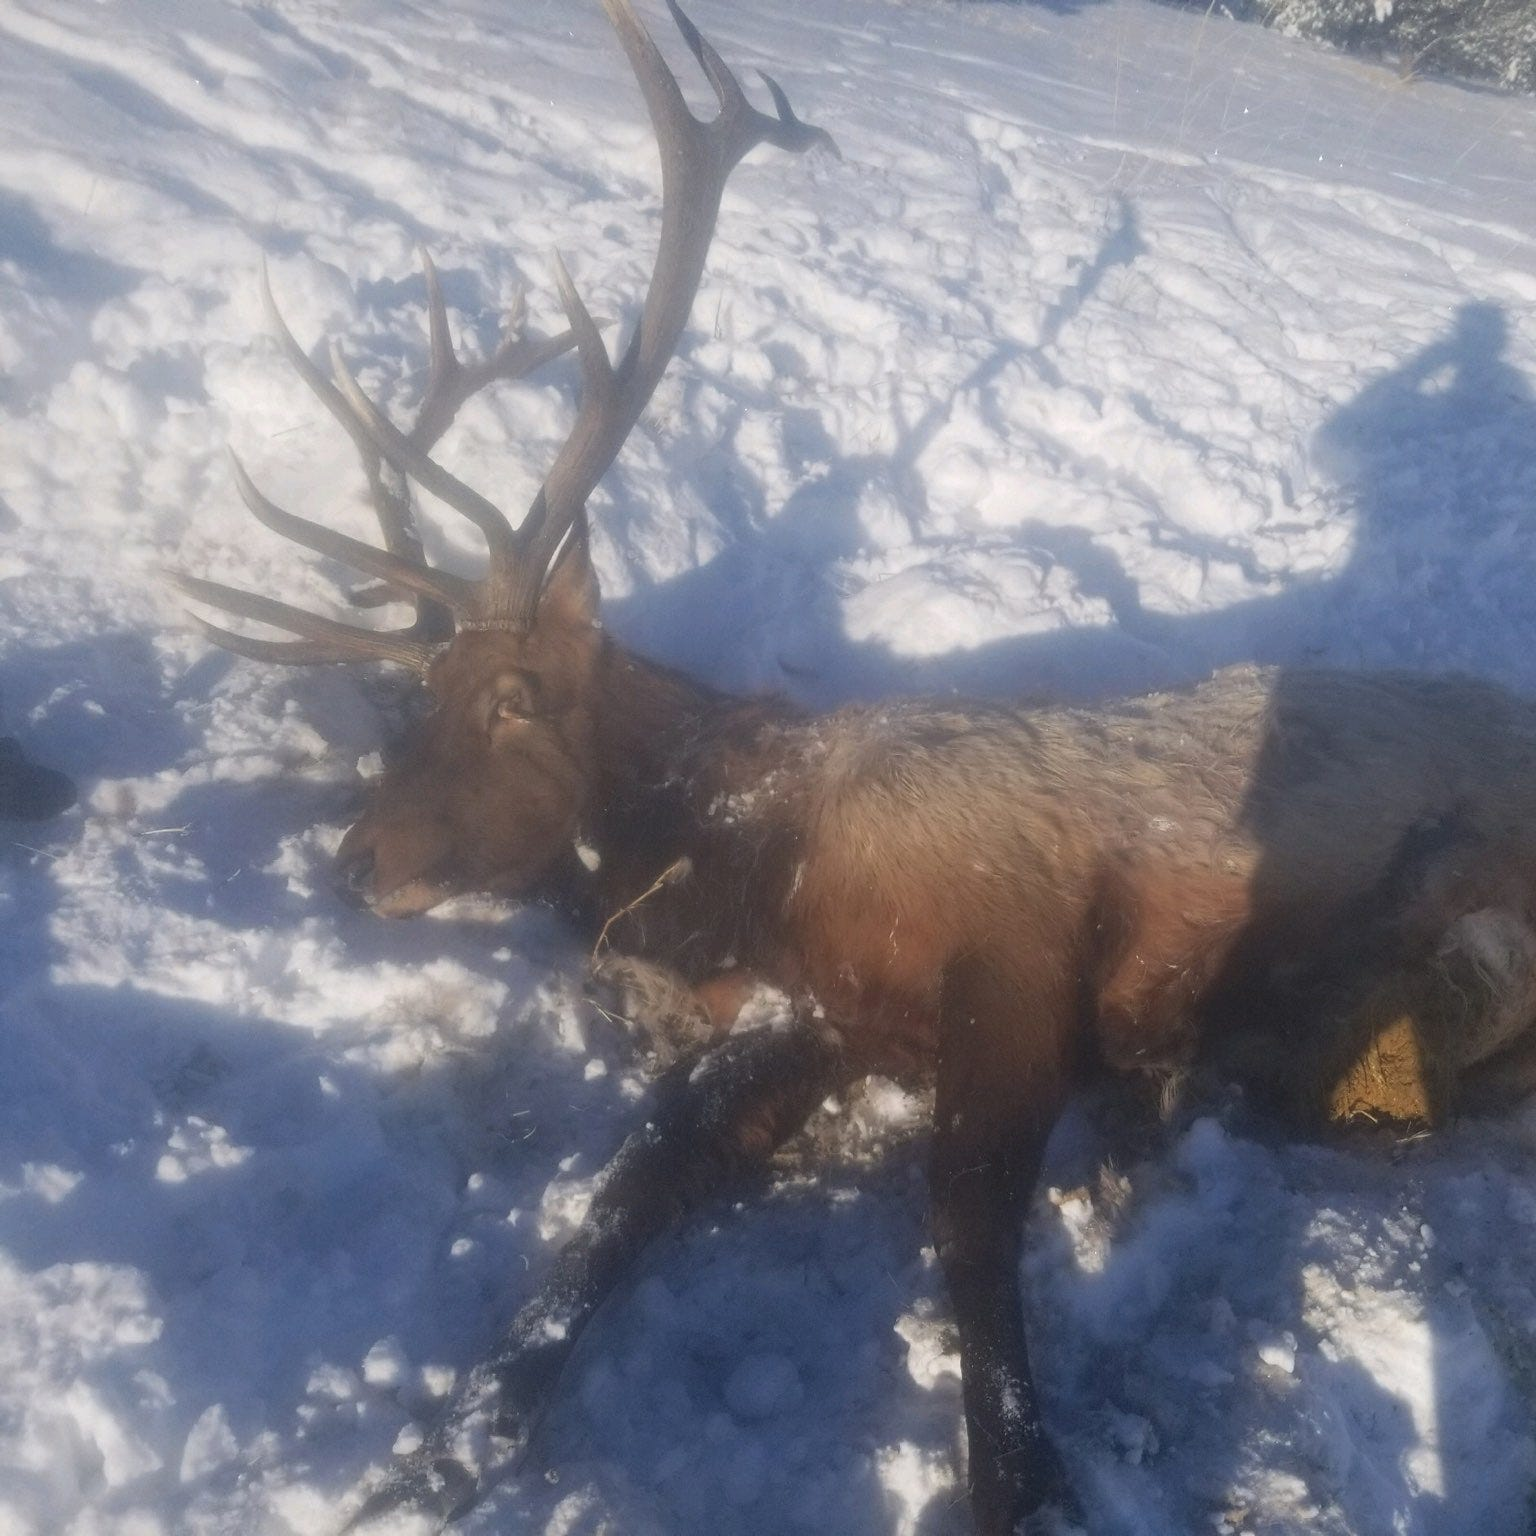 Two poached elk found in Blaine County